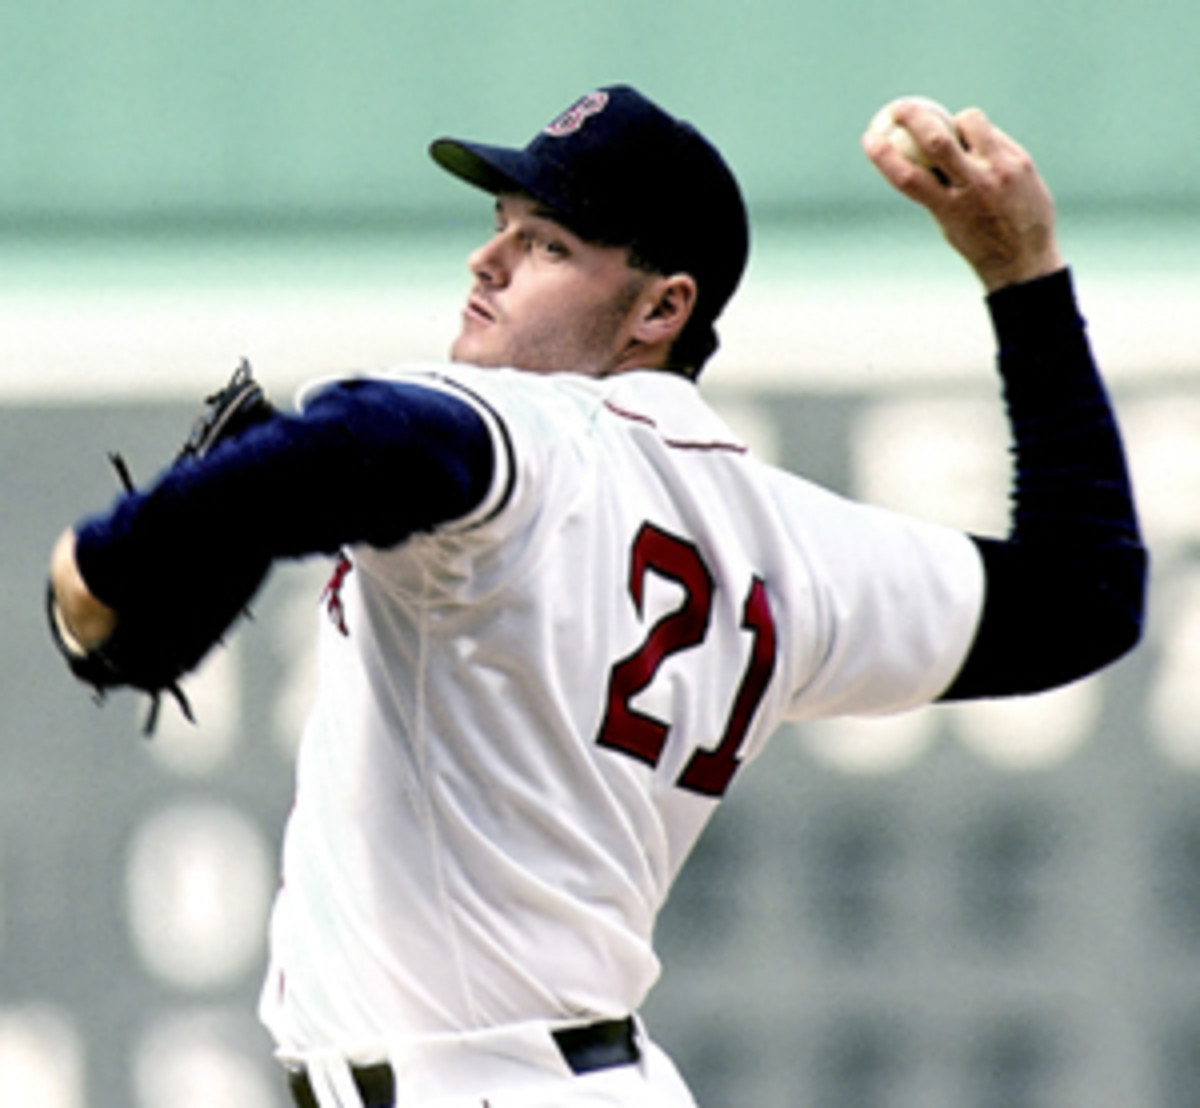 Roger Clemens only made two All-Star teams during the 1980s, despite being among the best starting pitchers in baseball.